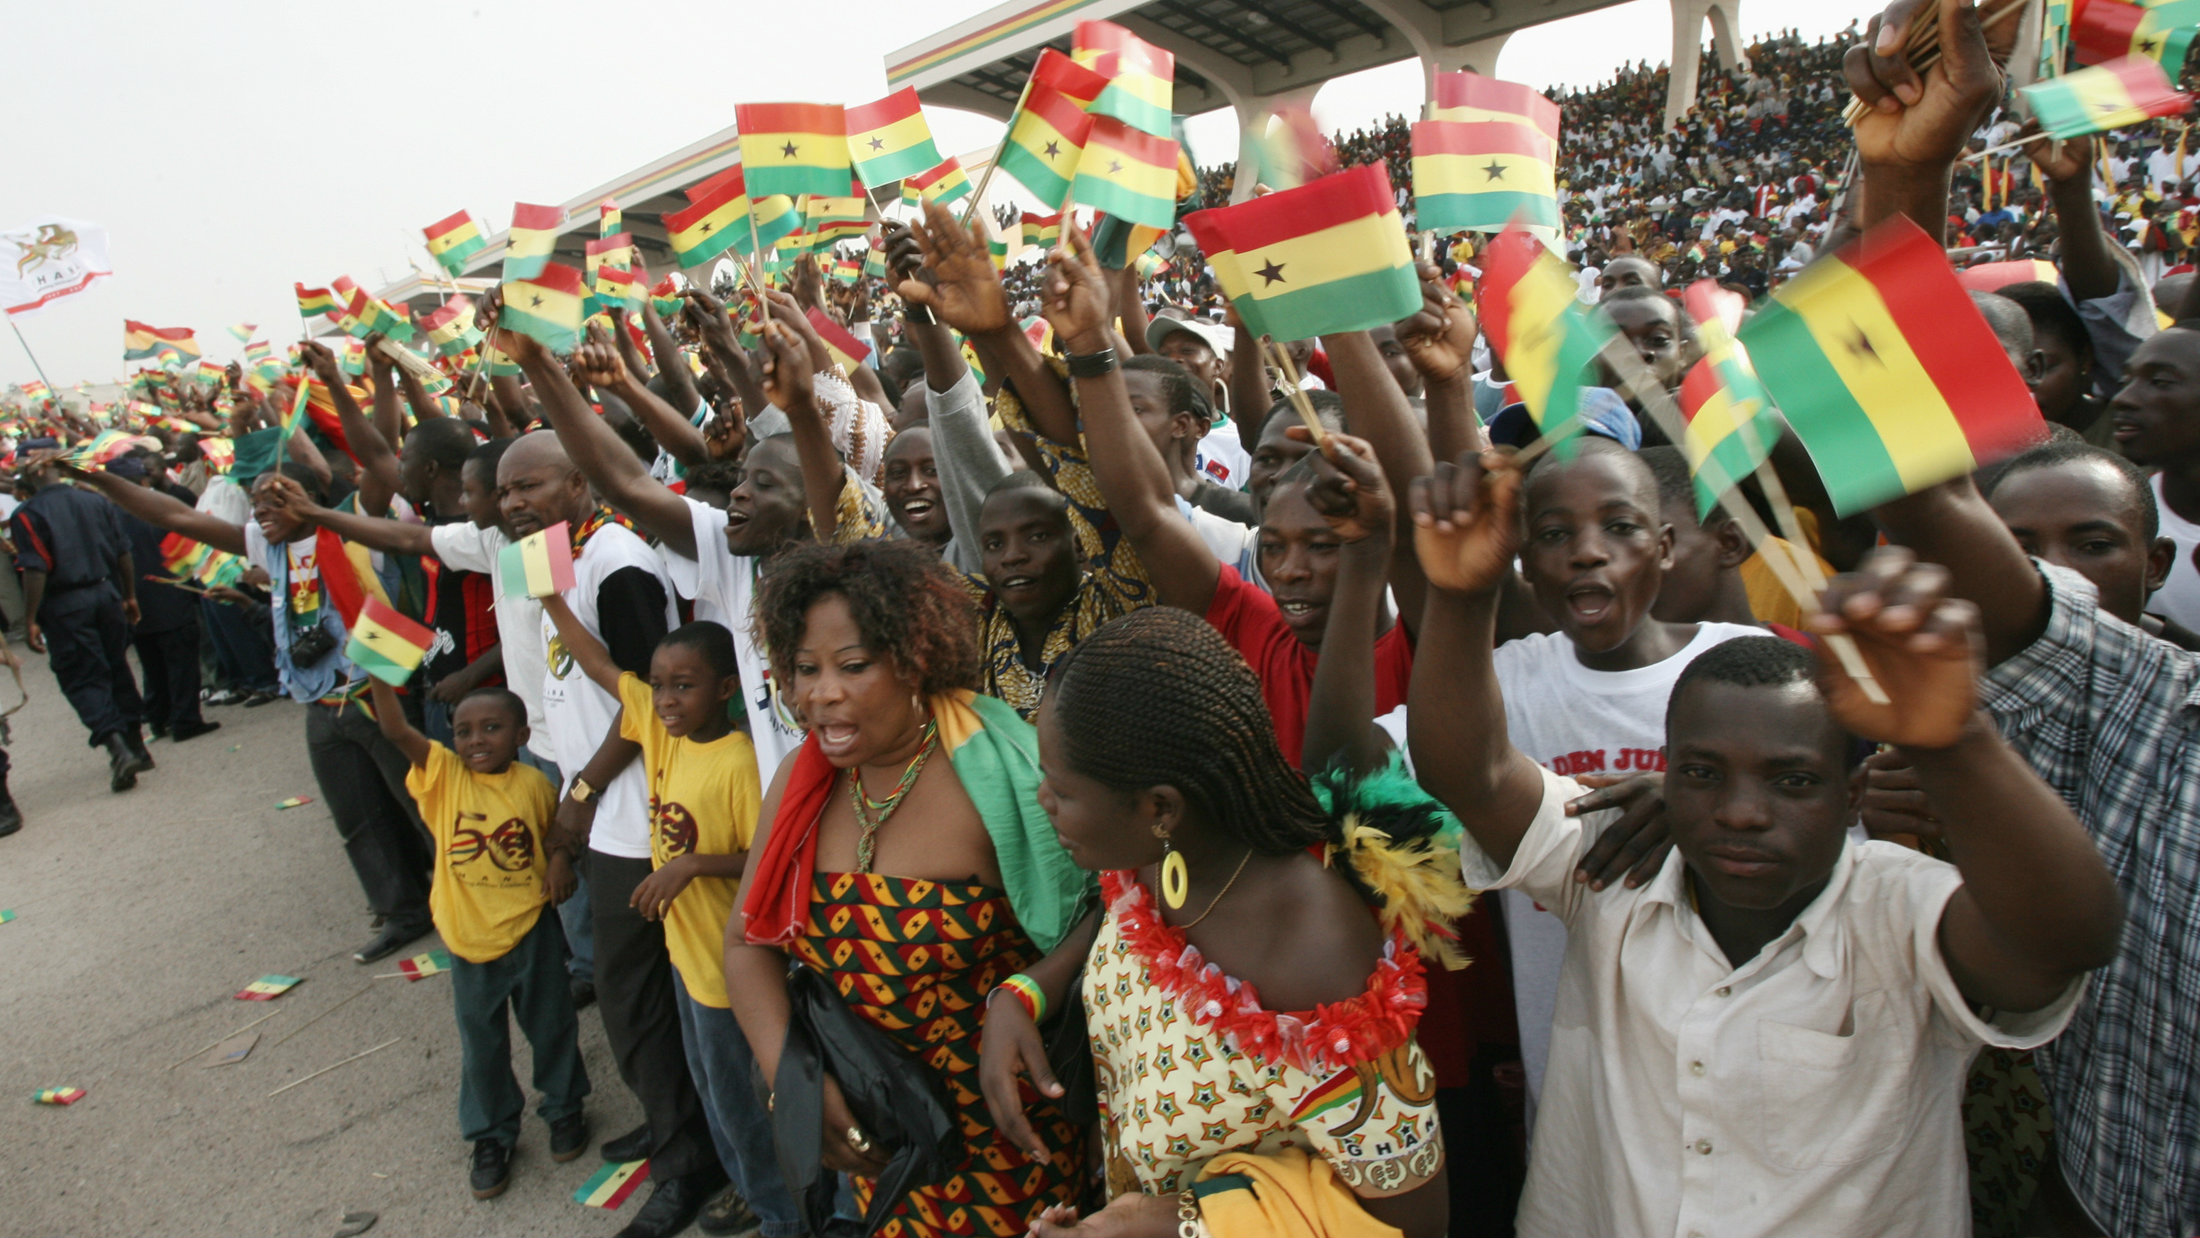 People raise national flags at Independence Square during celebrations marking the 50th anniversary of the country's independence in Accra March 6, 2007